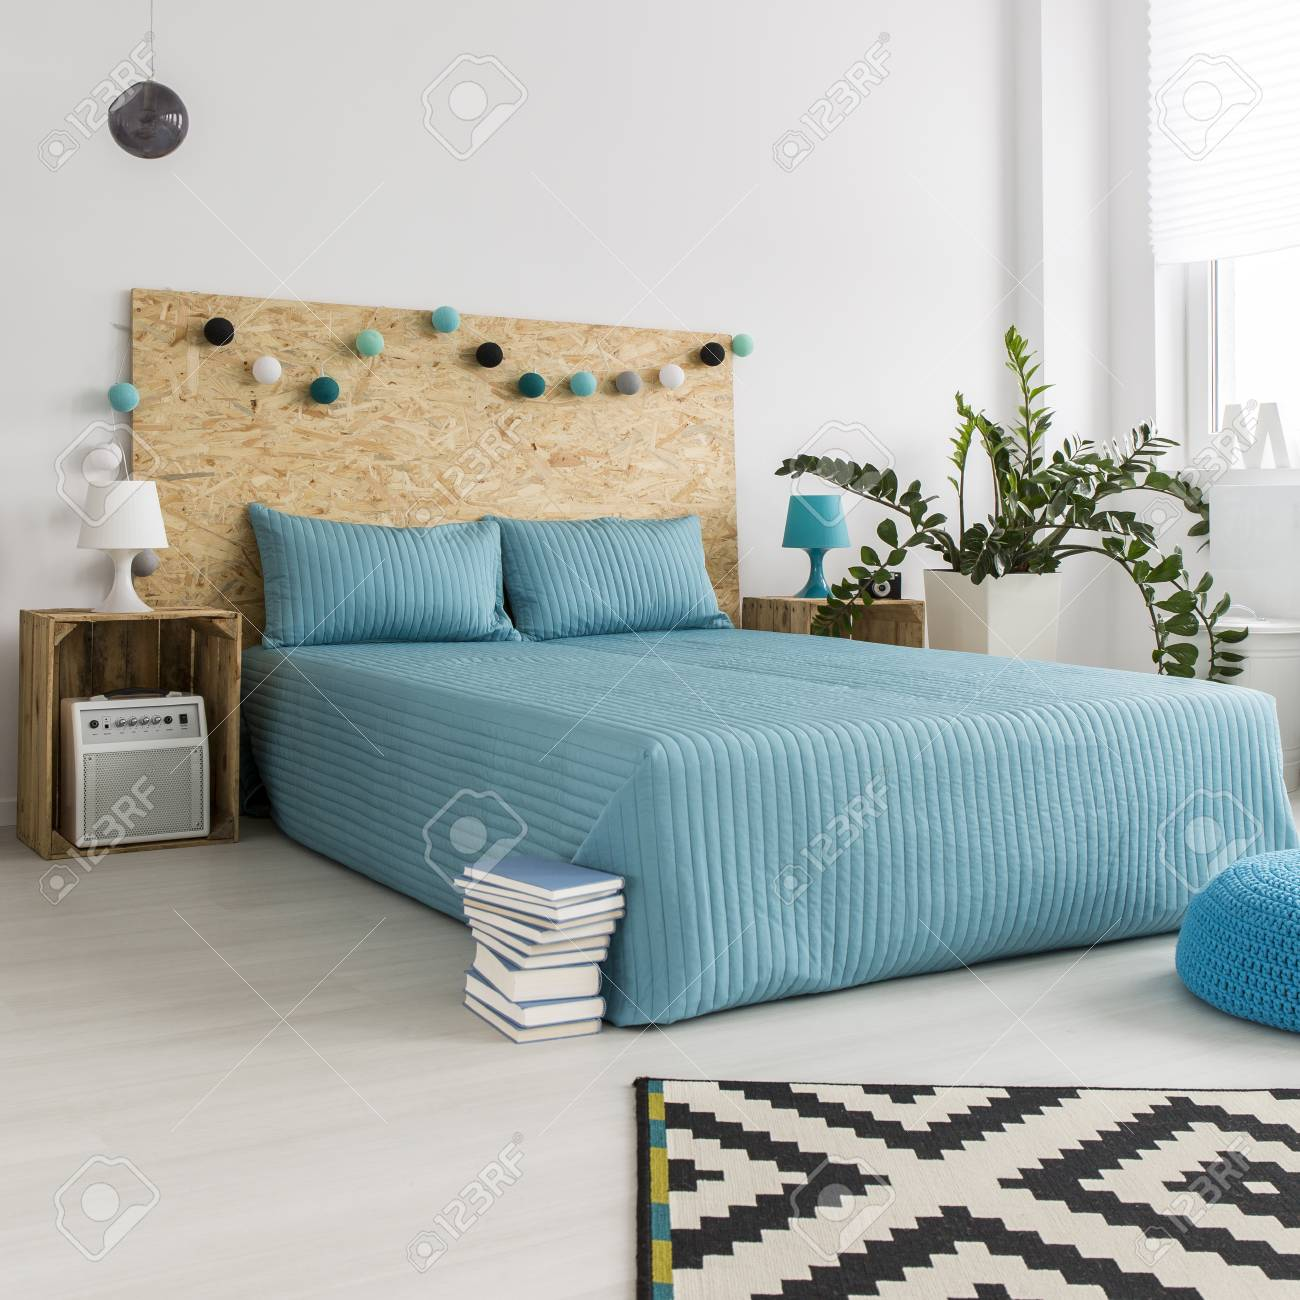 Camera Da Letto Hipster Blue Bedcover On The Bed In Modern Minimalist Bedroom With Diy